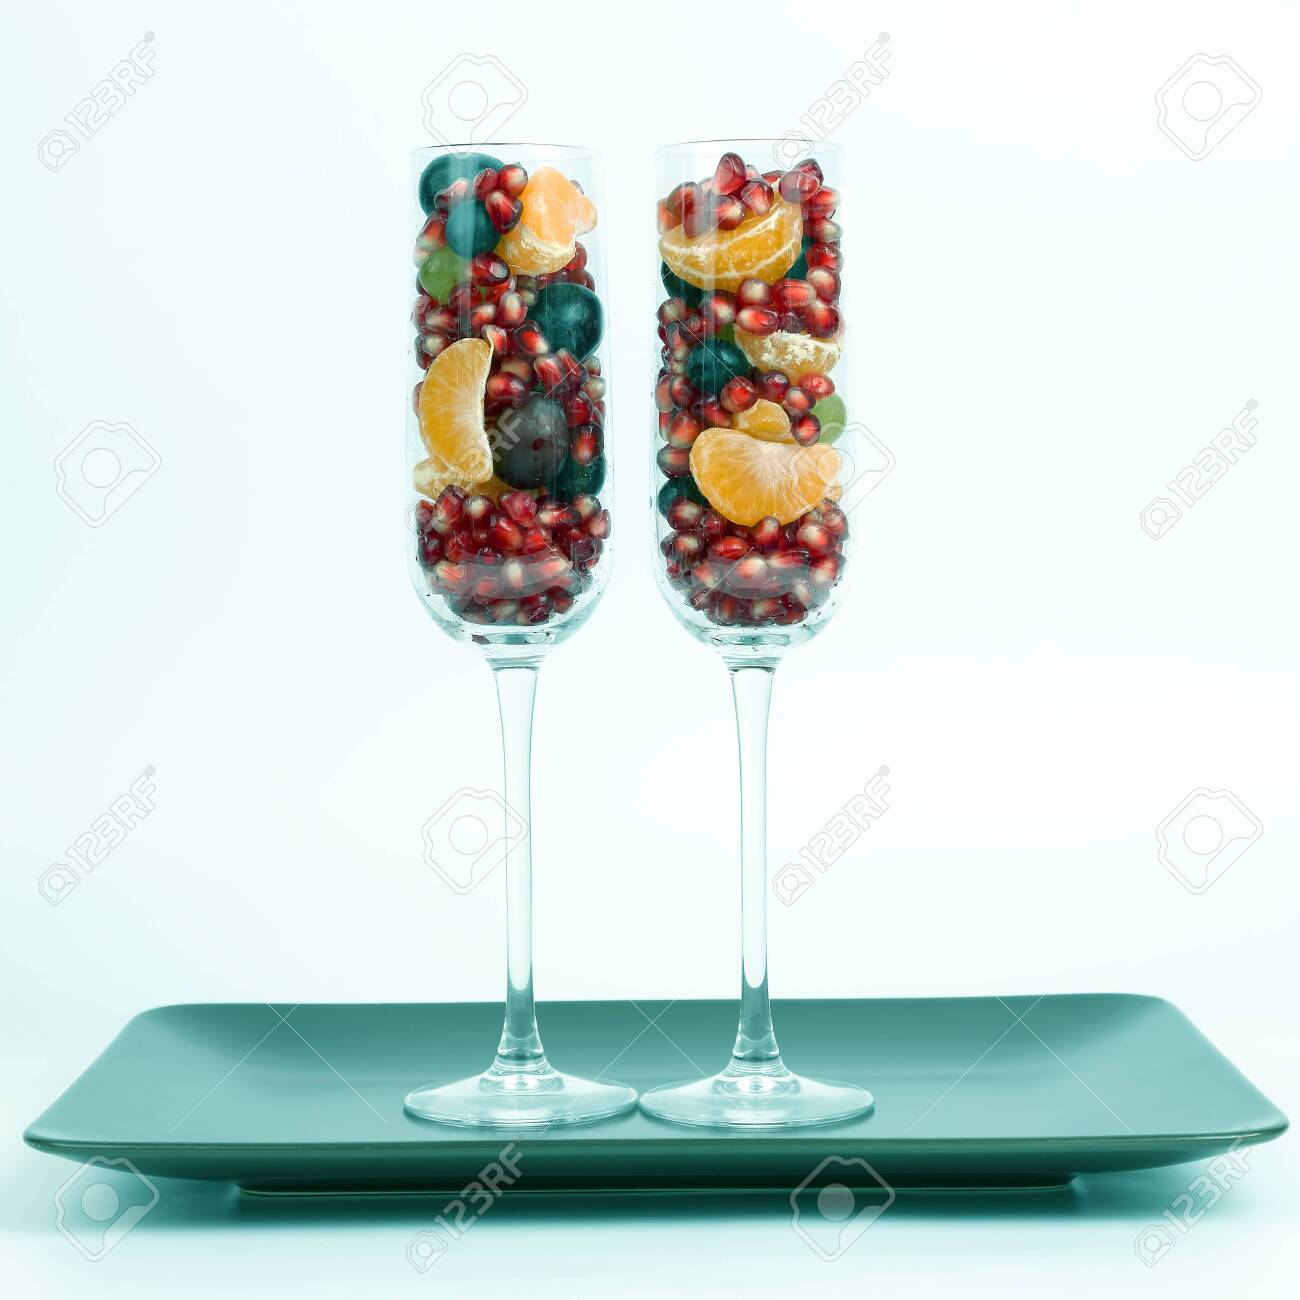 two glasses filled with fruit on a light background. healthy fresh vegetables and food - 125138691